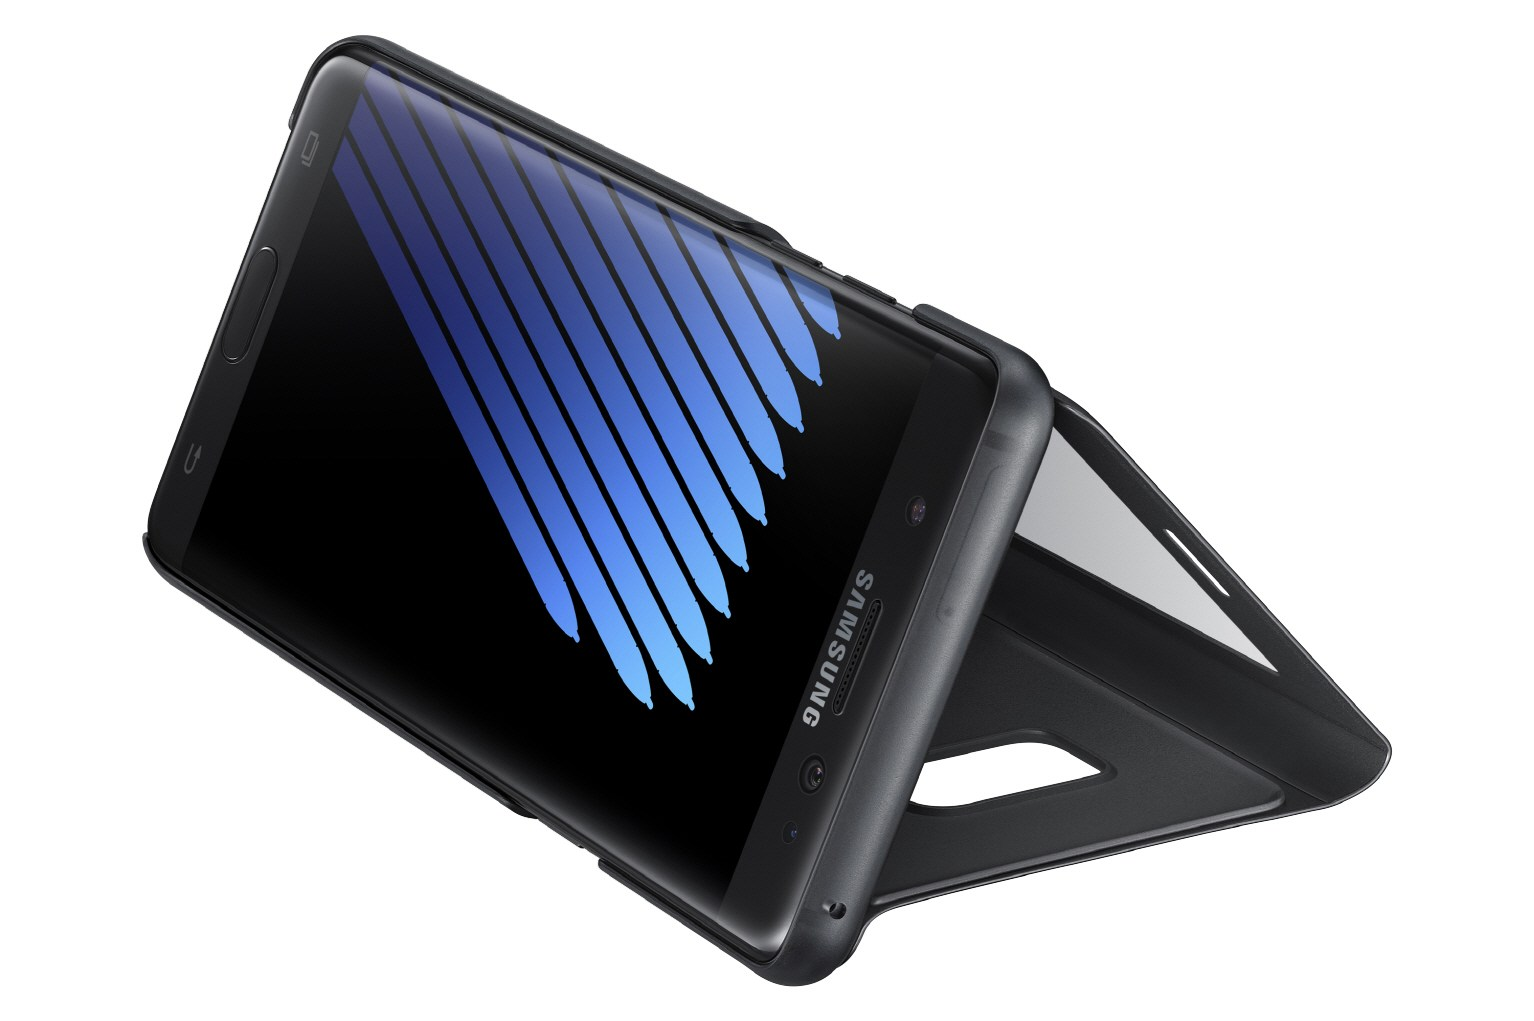 Samsung's Official S-View Flip Kickstand Case